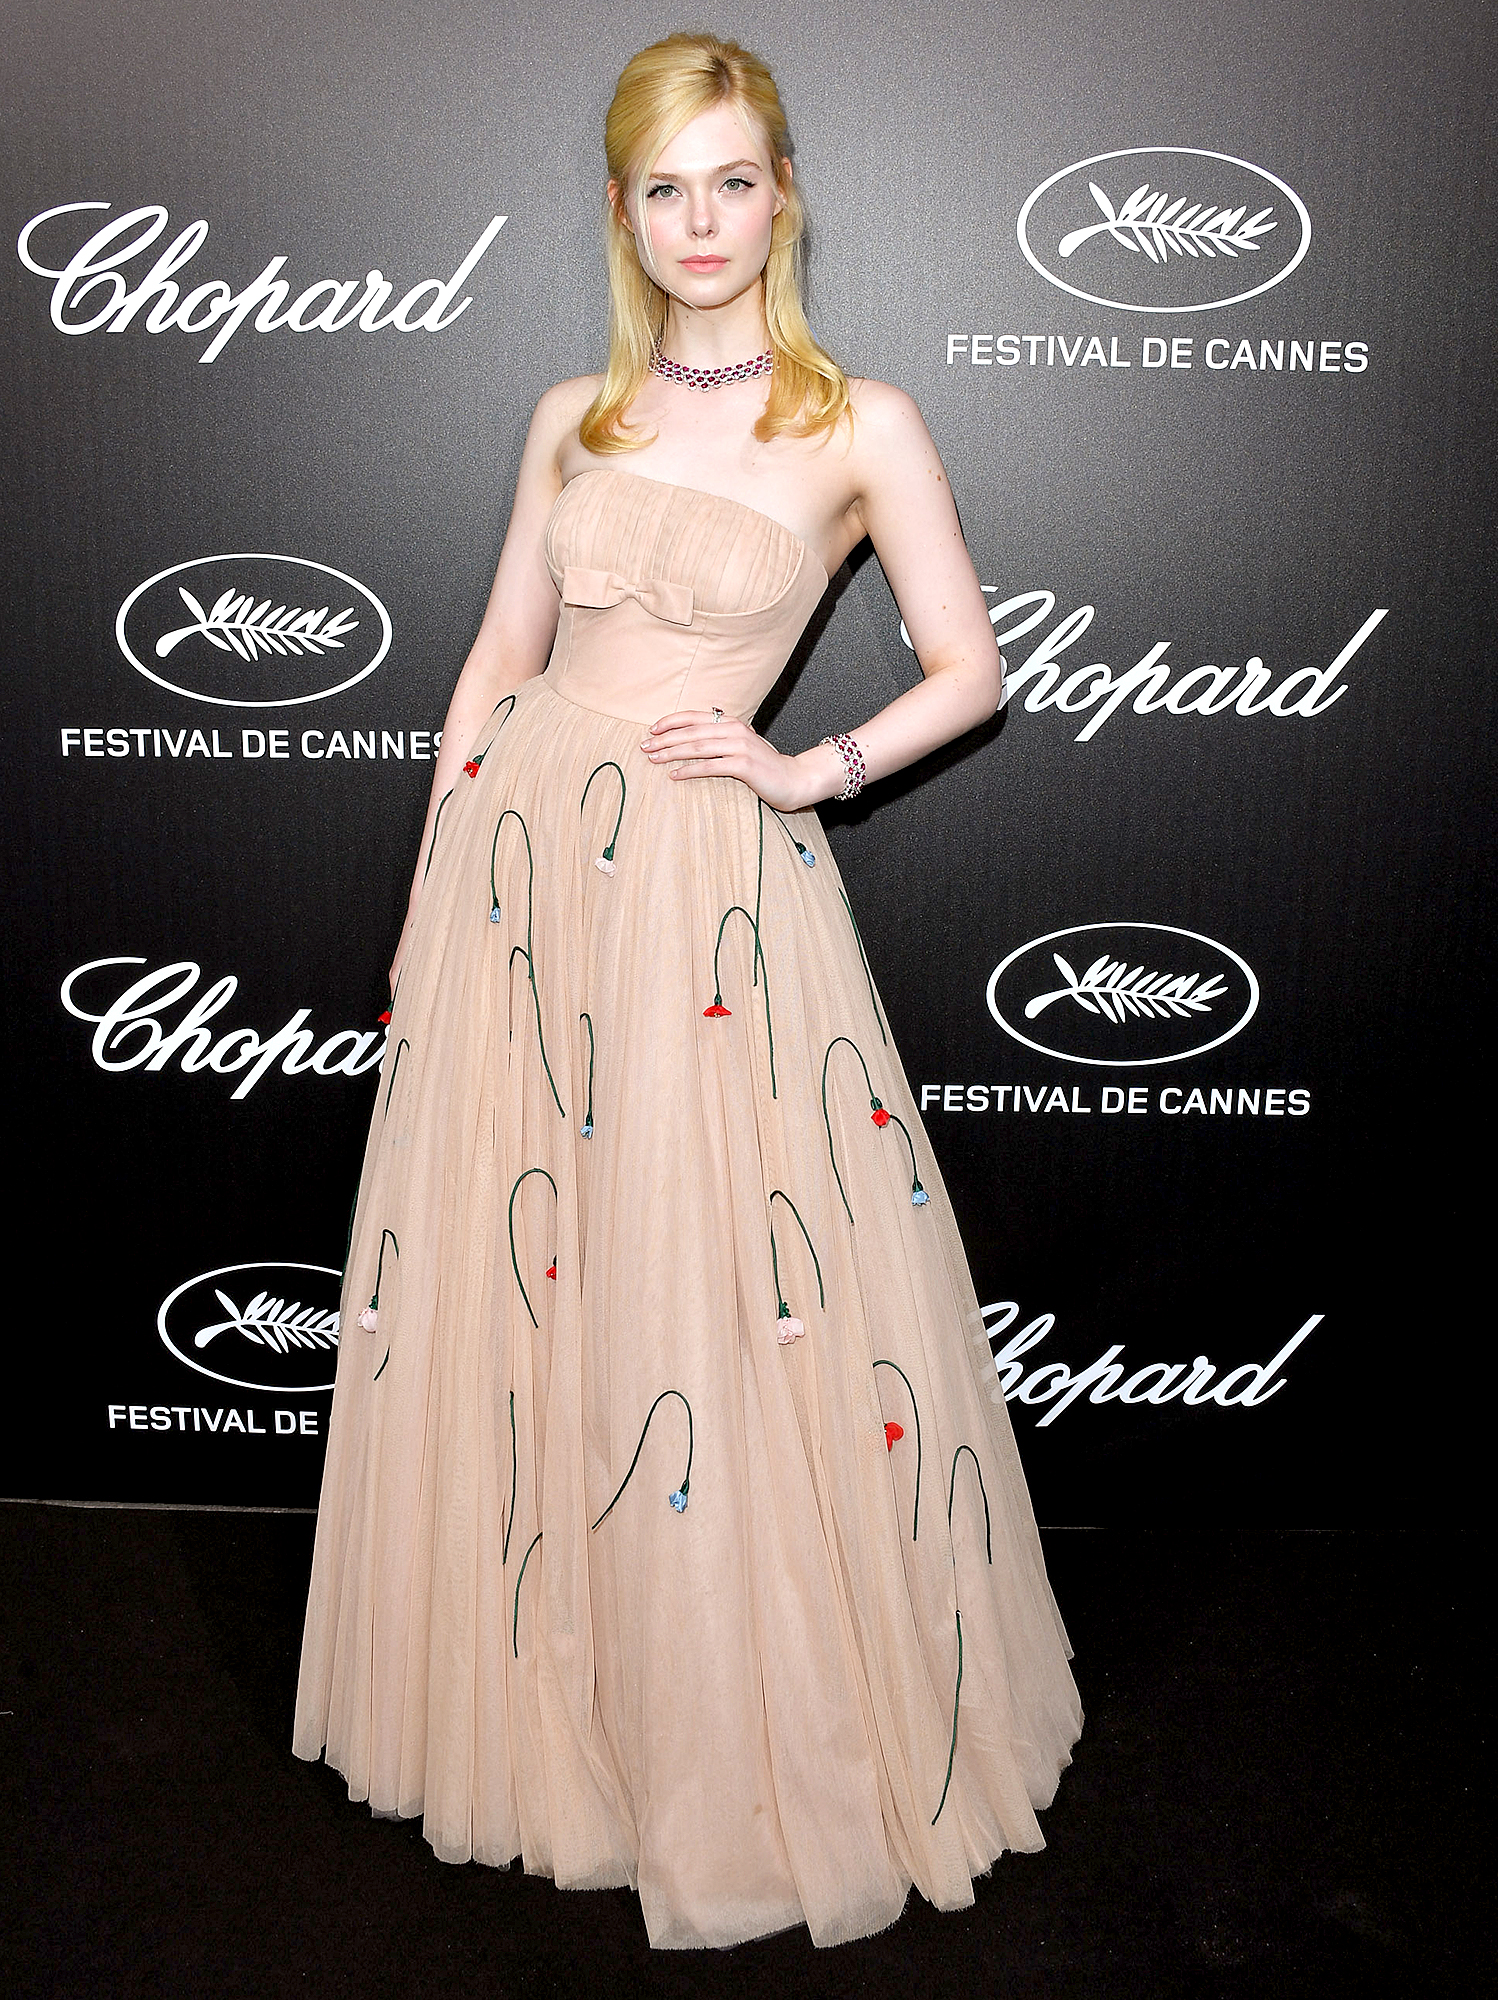 """Elle-Fanning - Before fainting and having Colin Firth come to her aid inside, the jurist arrived at the Chopard Trophy Event on Monday, May 20, in a strapless Prada gown and bling by the jeweler. """"Oops, had a fainting spell tonight in my 1950's Prada prom dress but it's all good!! #dresstootight #timeofthemonth,"""" she later shared on Instagram of the incident."""